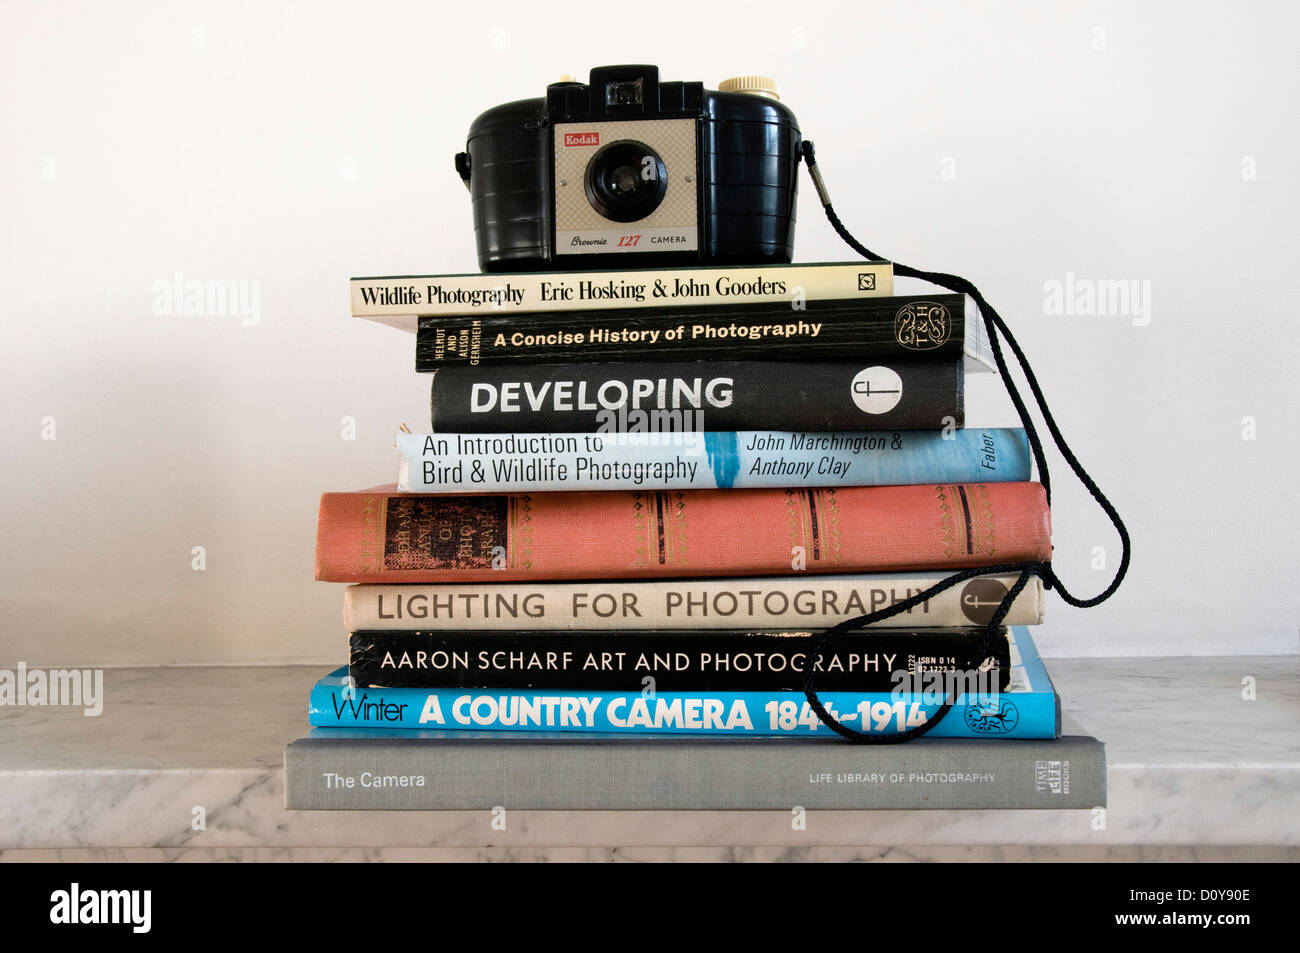 Pile of vintage photographic books with Kodak Brownie 127 camera on top - Stock Image